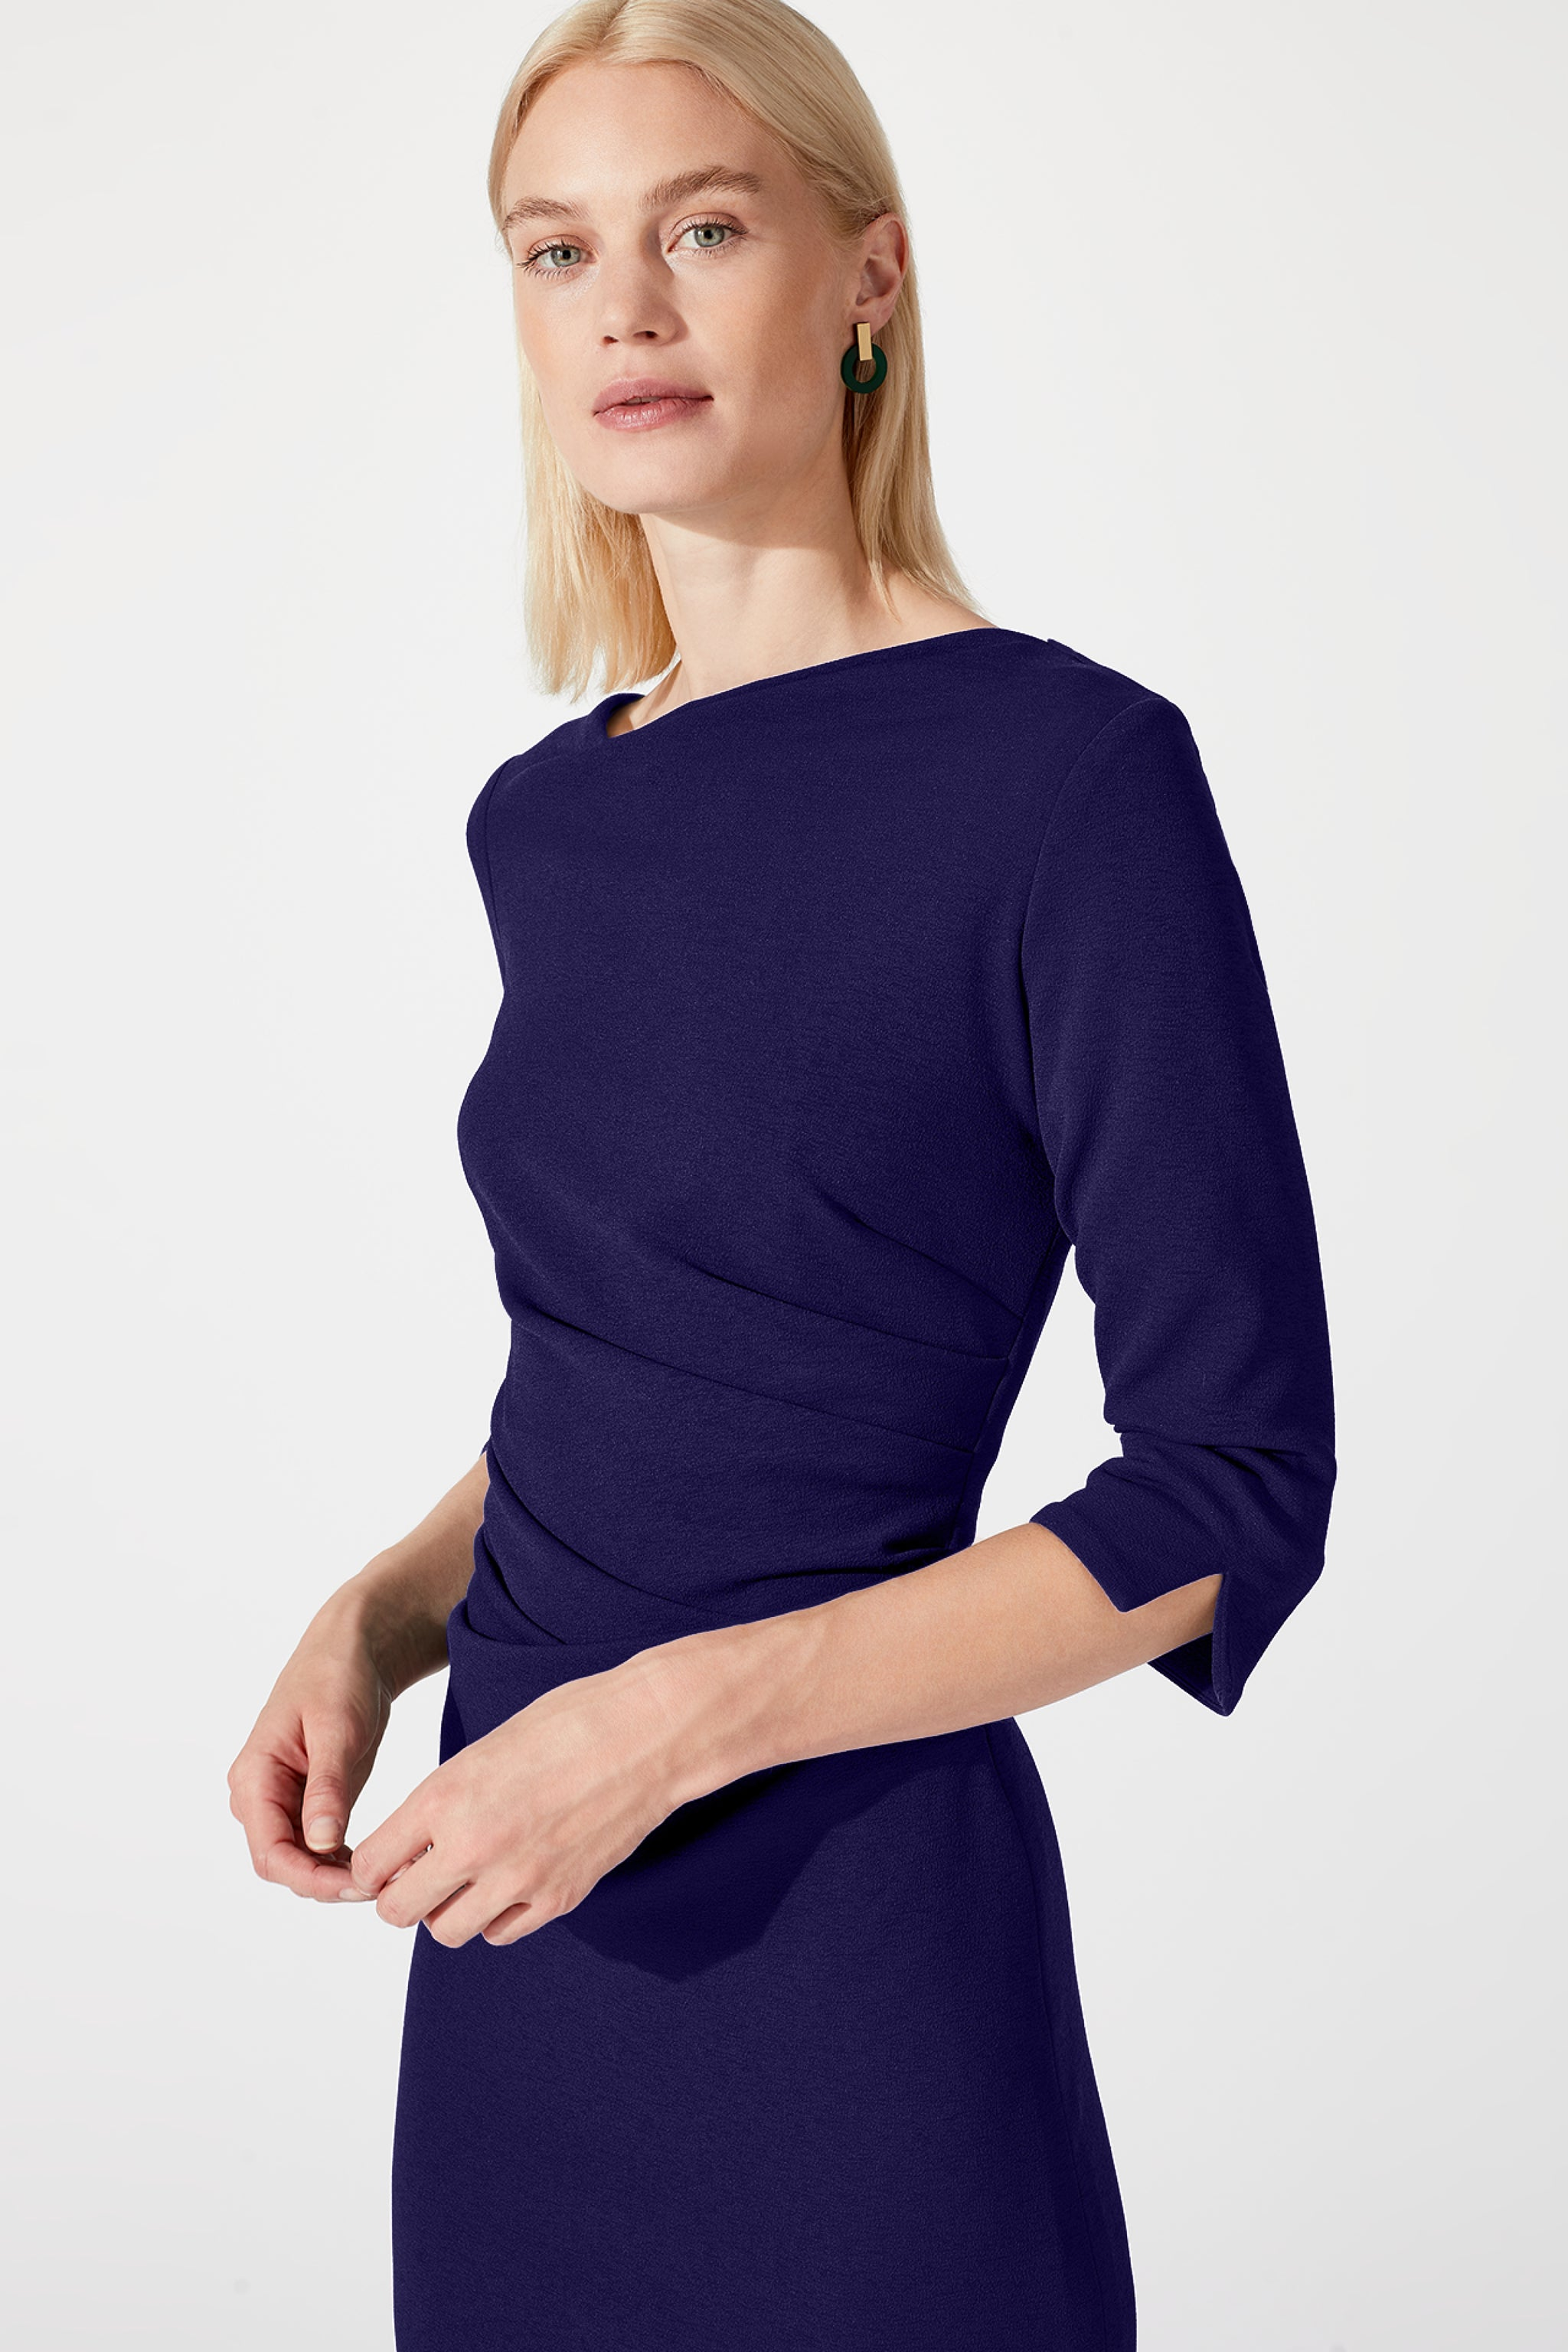 Tiverton Cobalt Dress